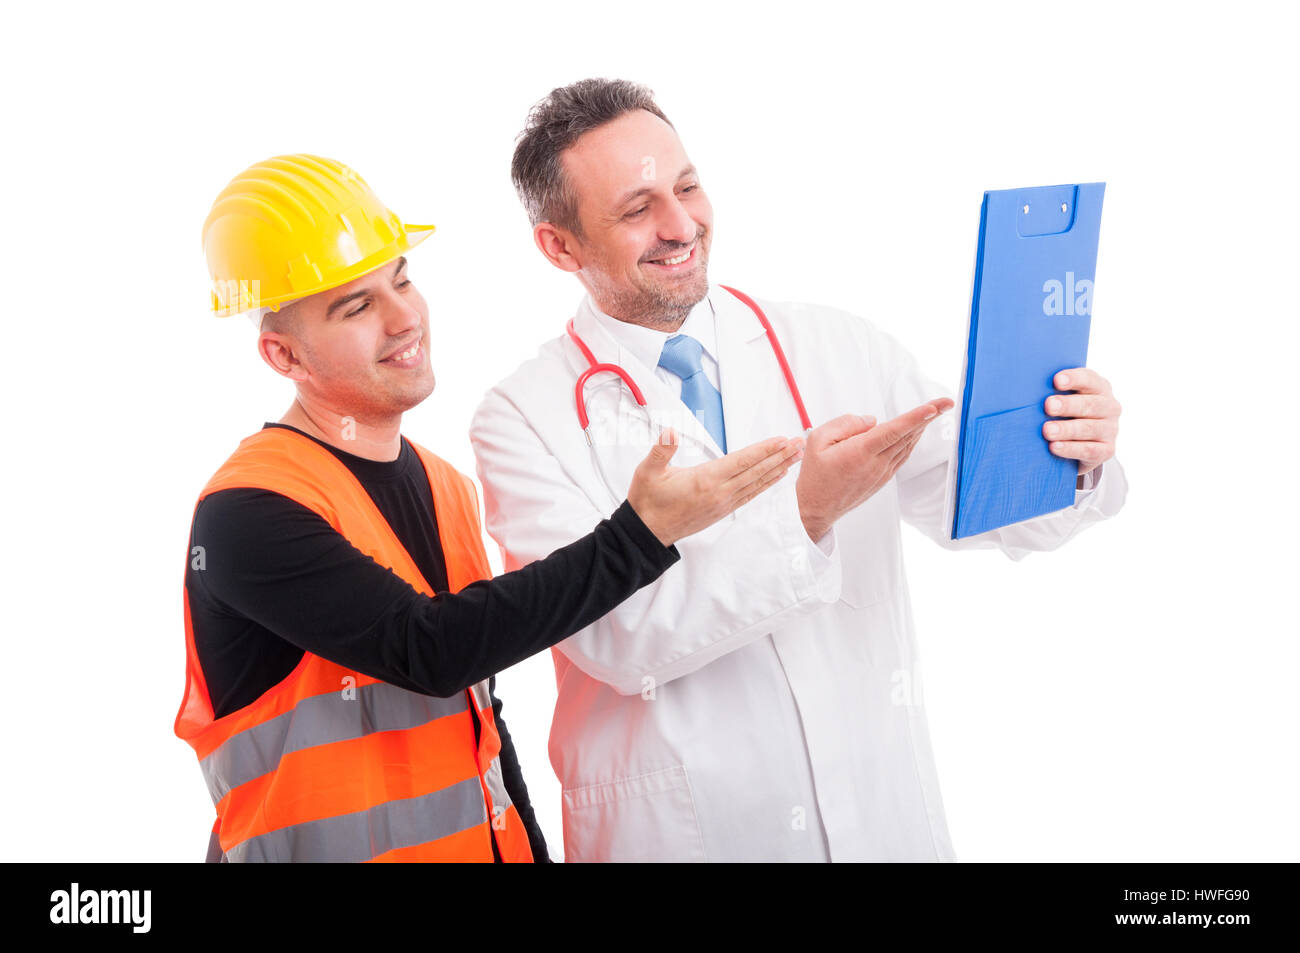 Doctor and constructor showing something on clipboard and smiling isolated on white background Stock Photo